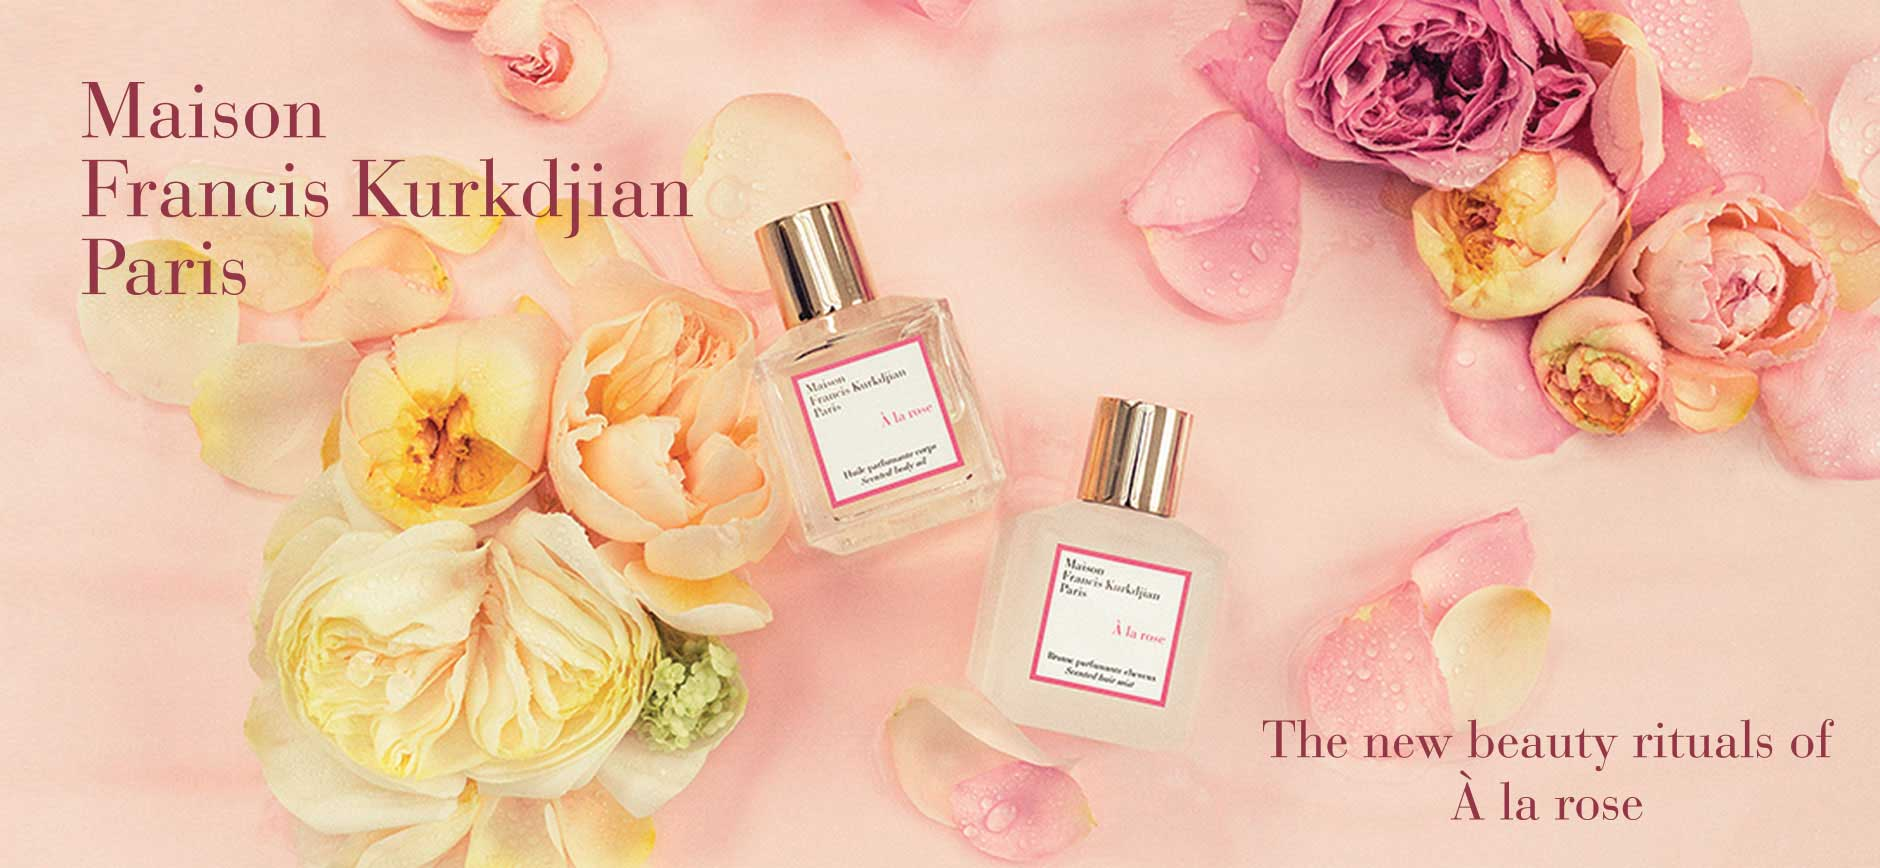 Maison Francis Kurkdjian Paris: The new beauty rituals of A la rose